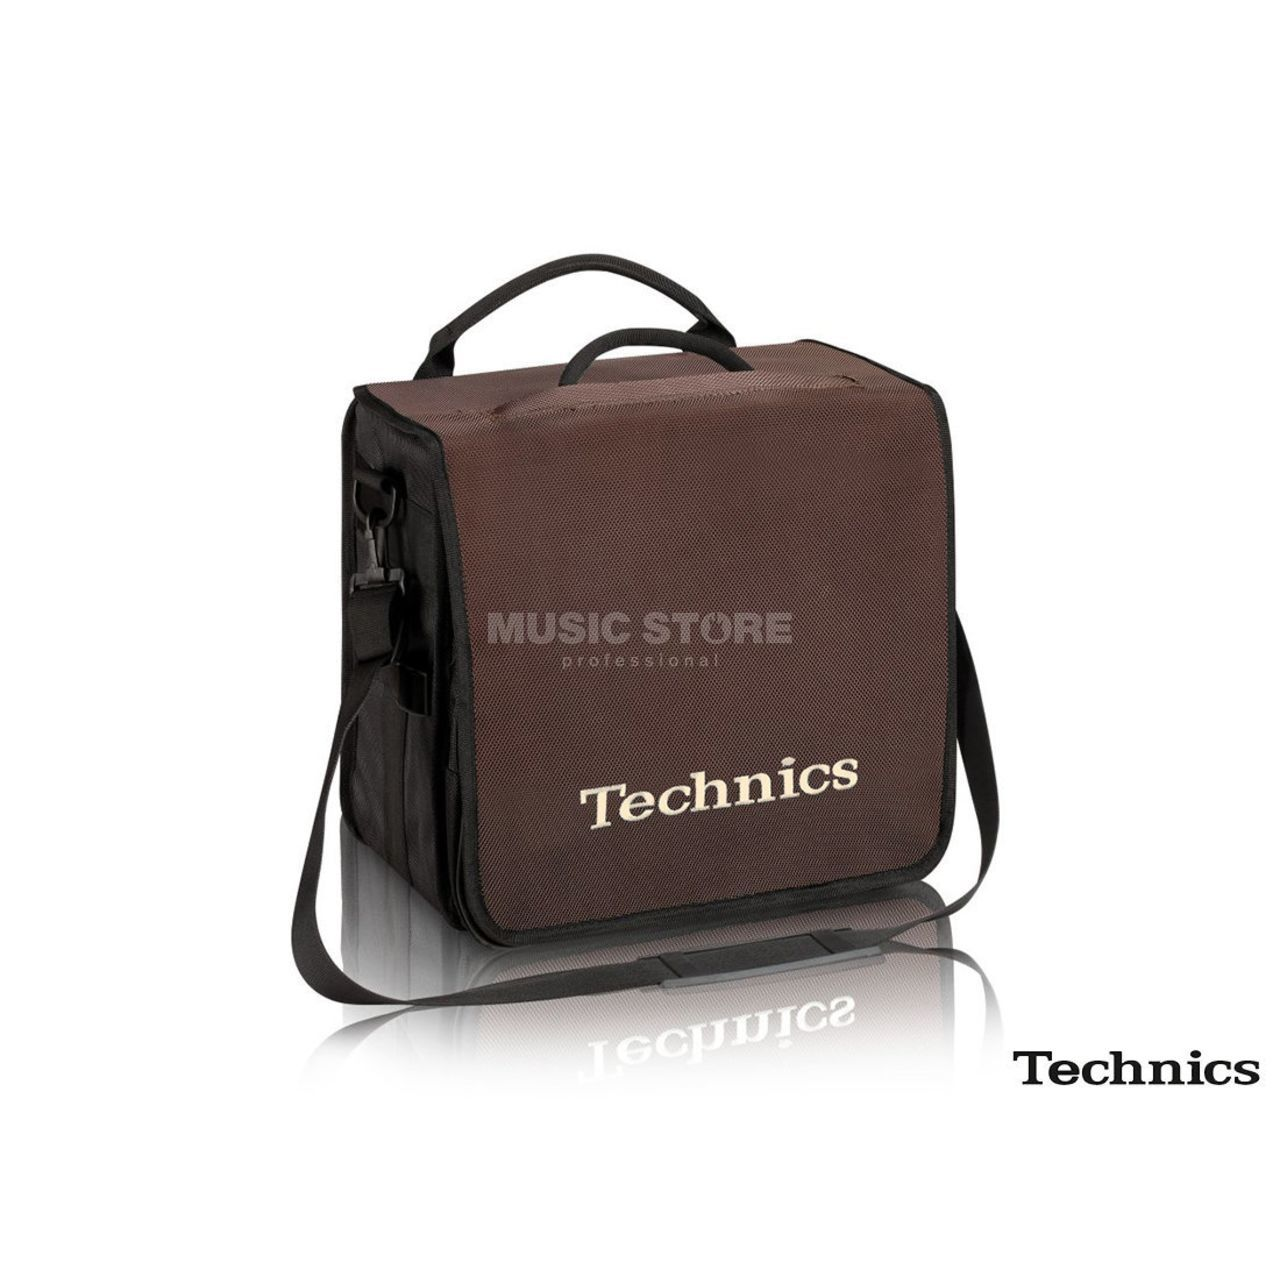 443036fab812b Technics BackBag braun-beige - MUSIC STORE professional